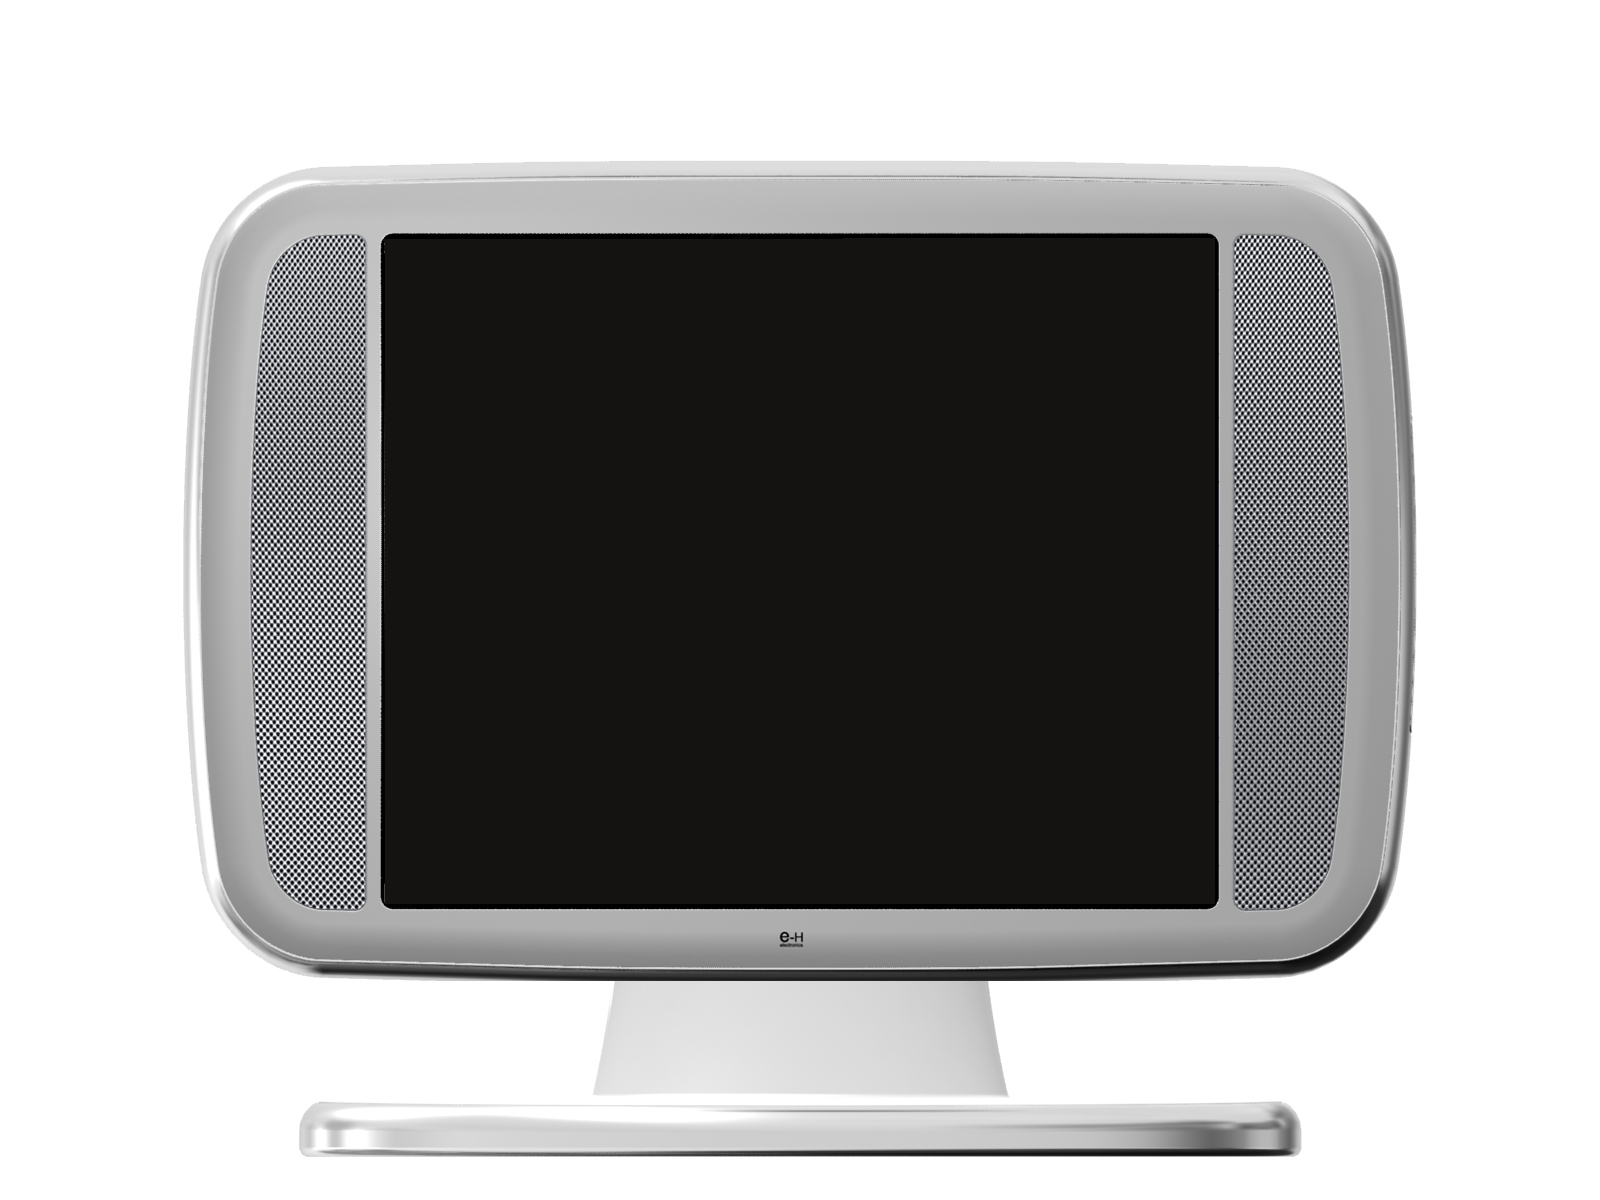 monitor_small_front_lowerbase.jpg